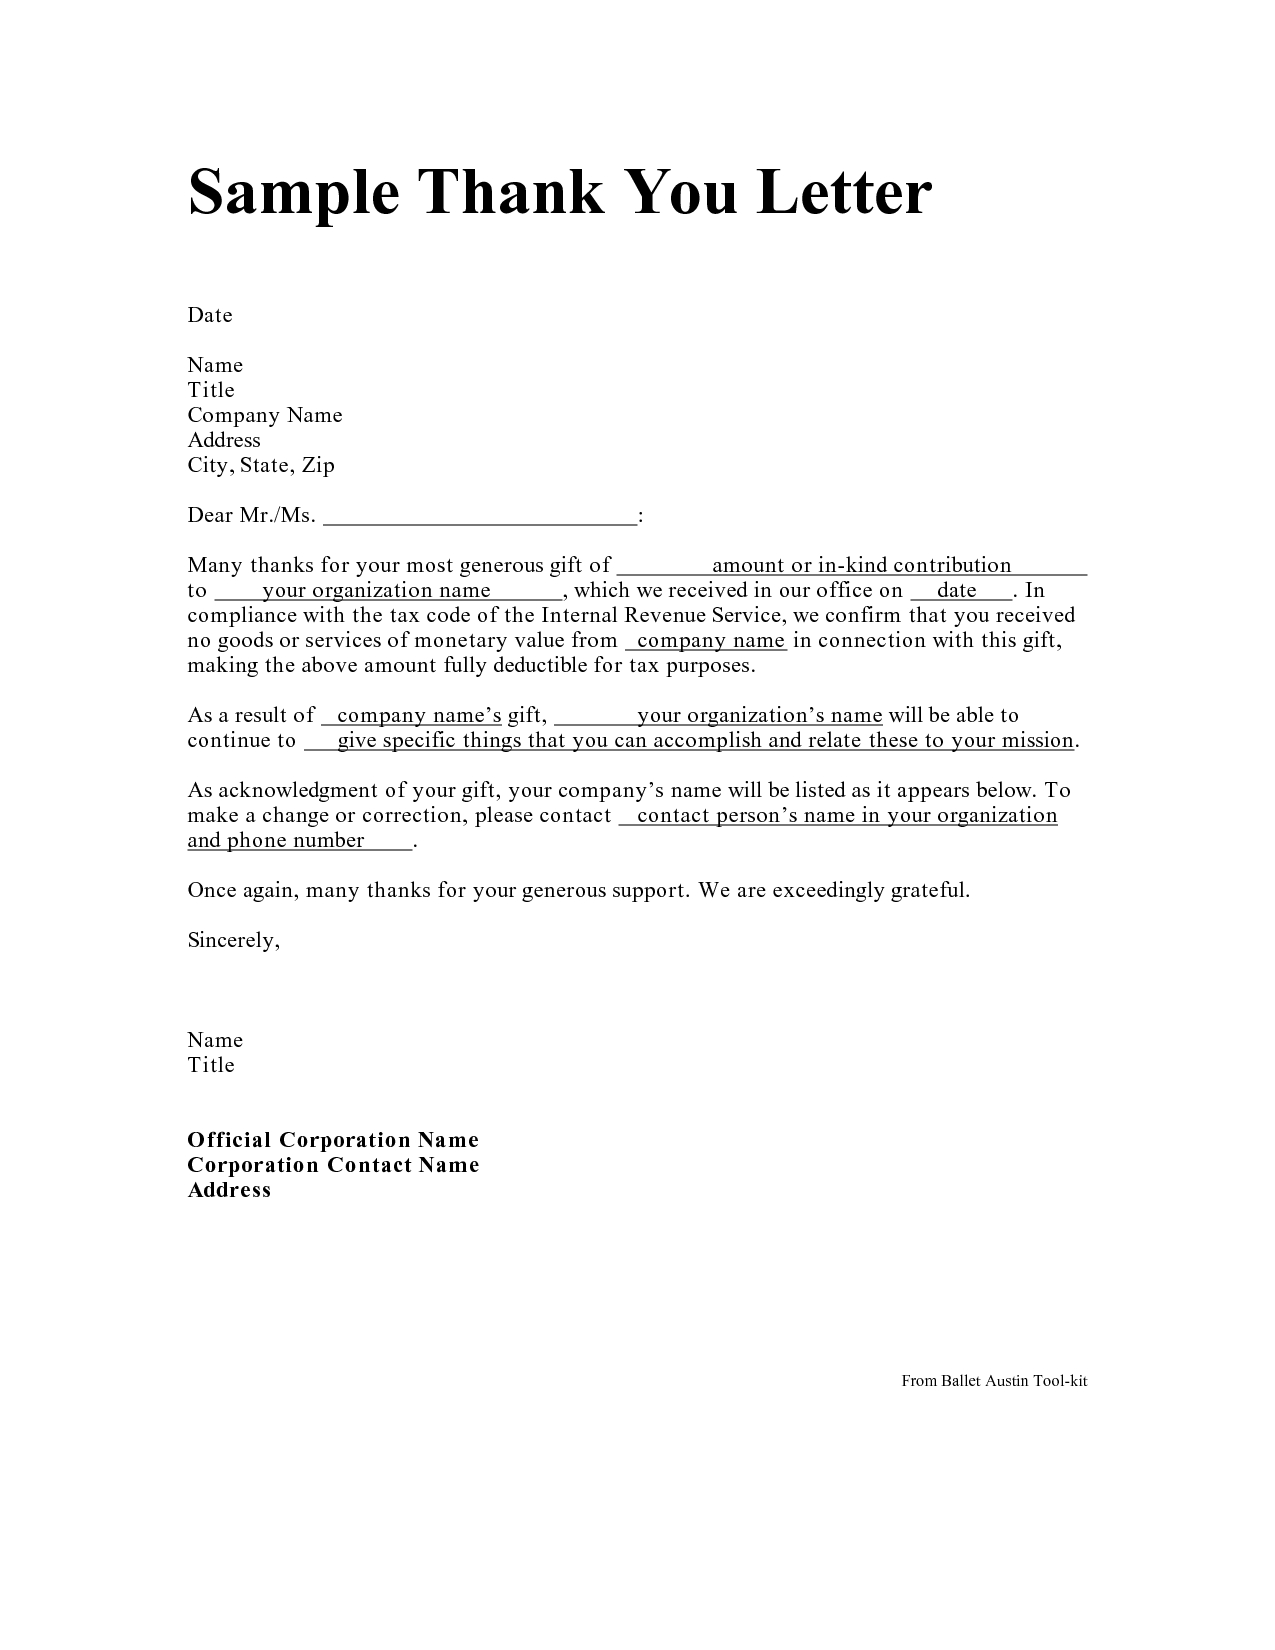 Fundraising Thank You Letter Template - Personal Thank You Letter Personal Thank You Letter Samples